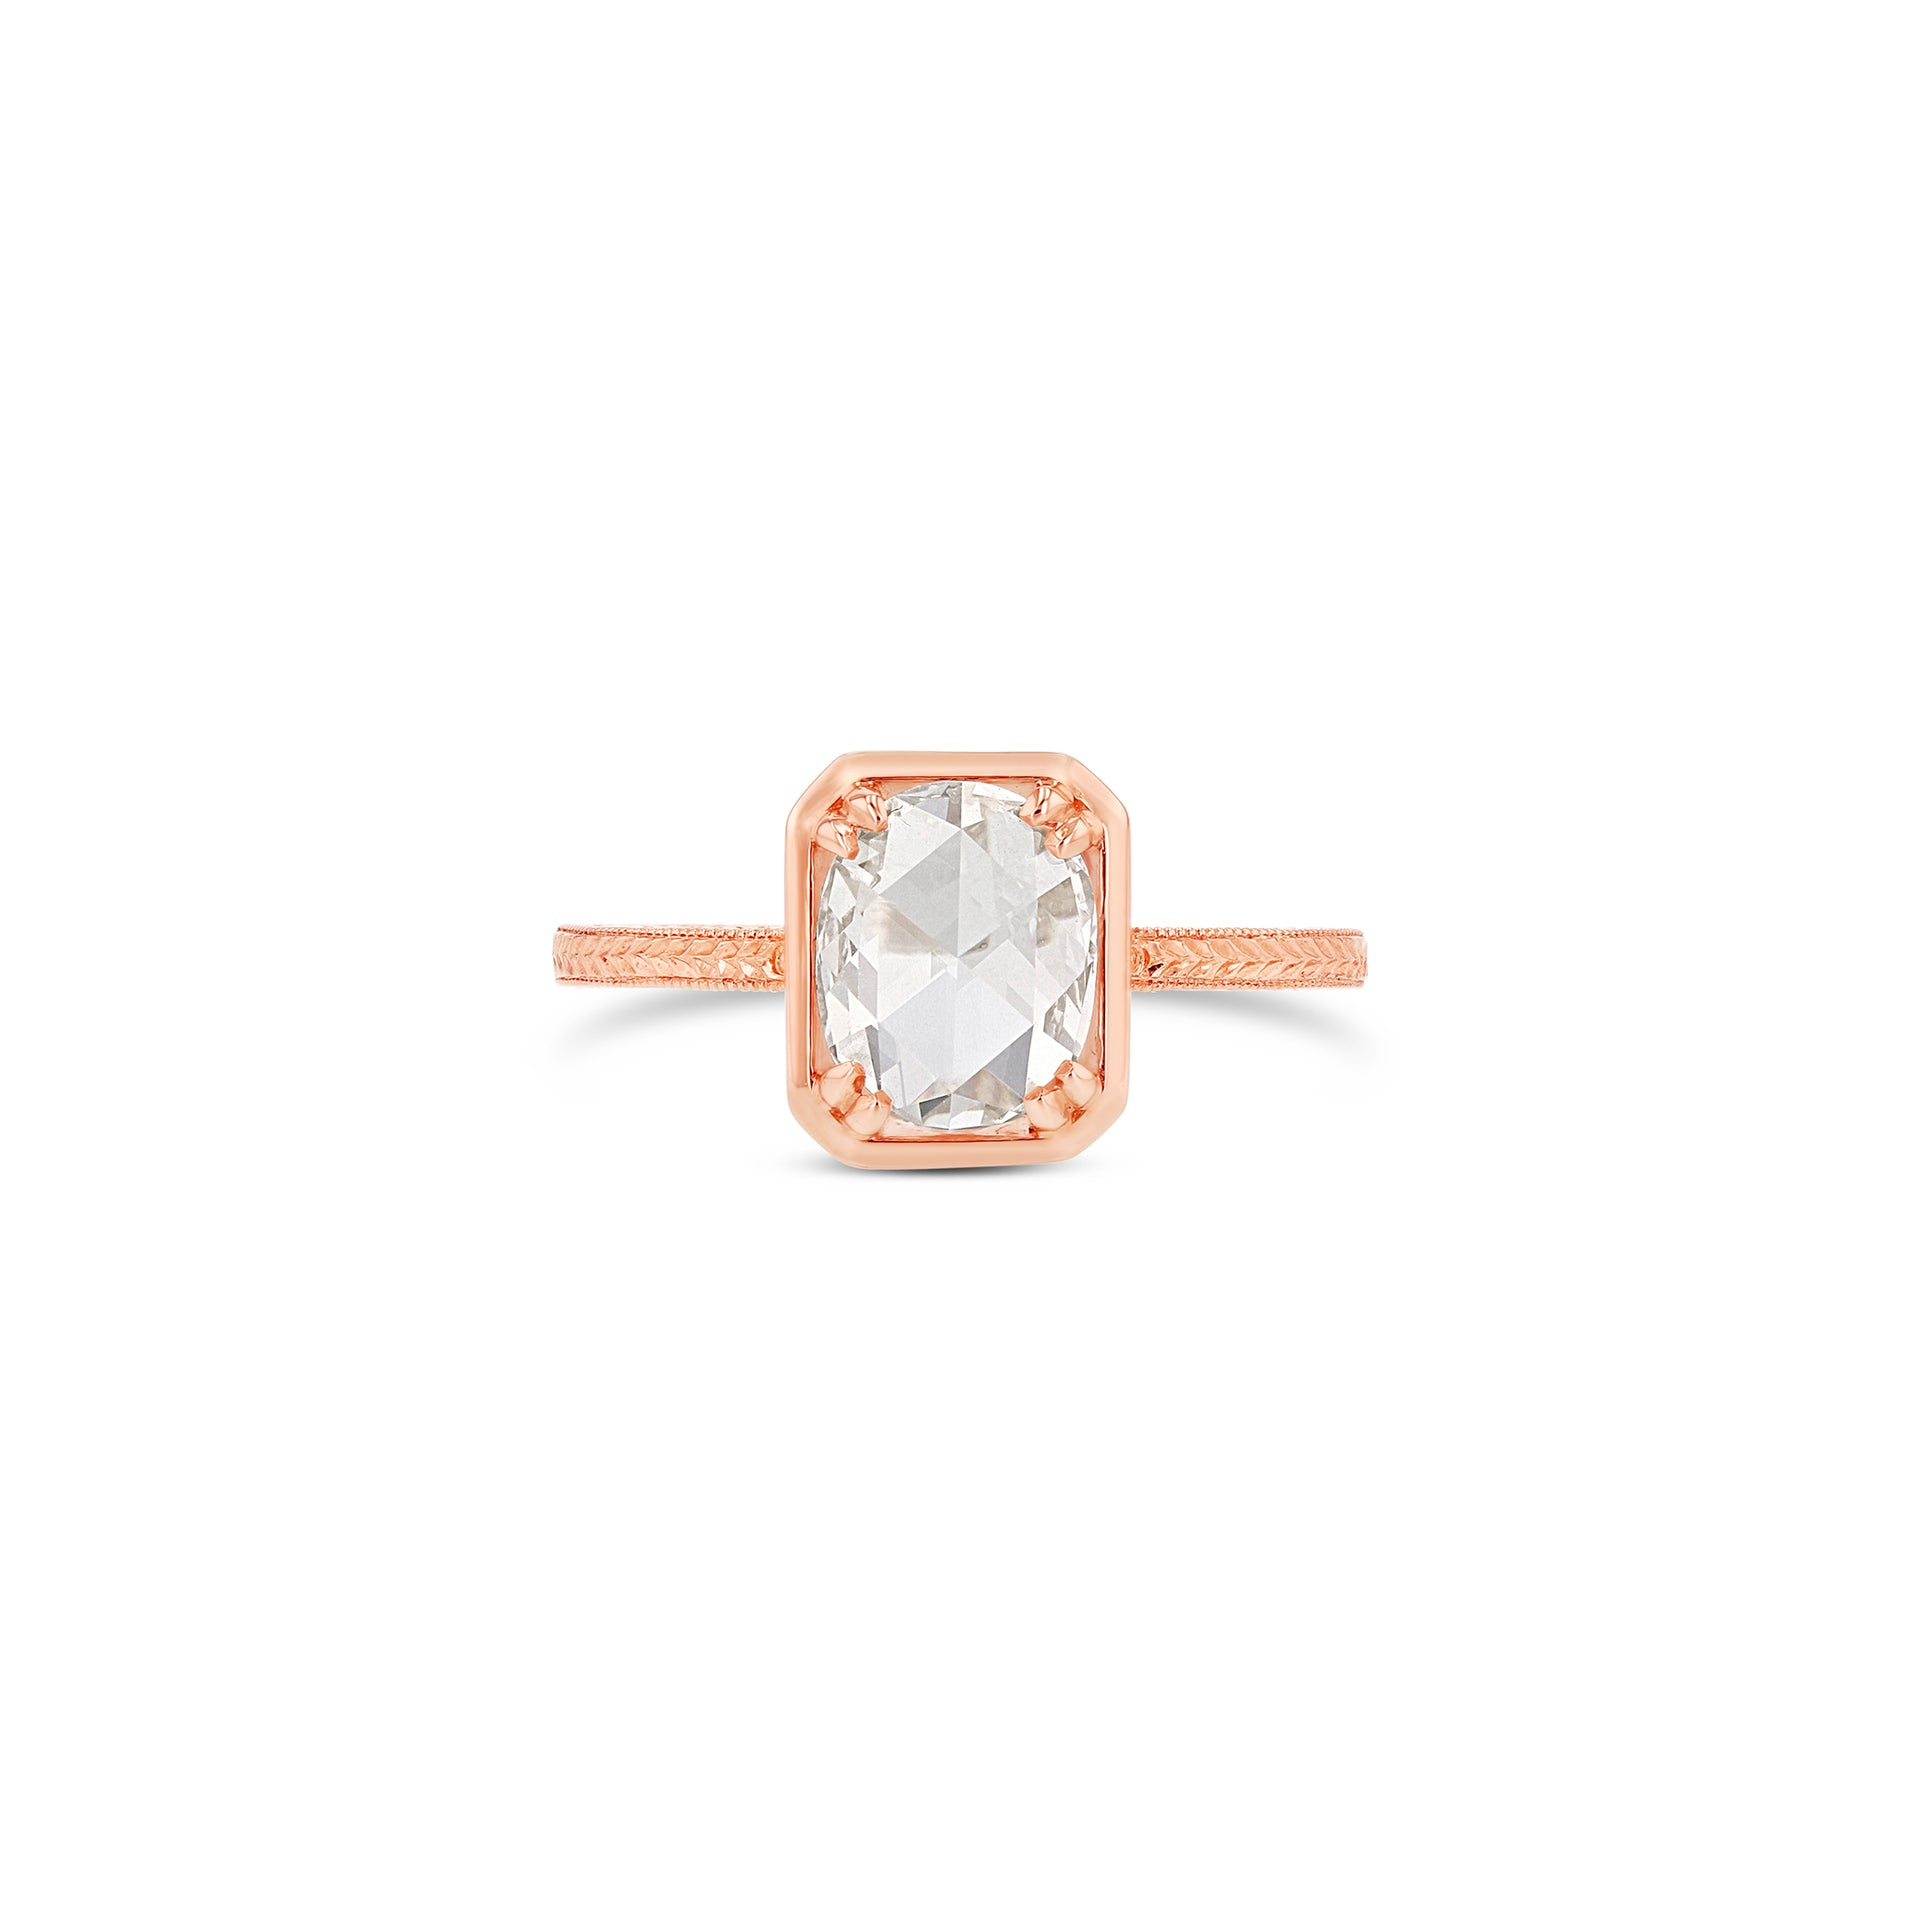 Oval Rose-Cut Diamond Octagonal Bezel Ring with Engraved Band